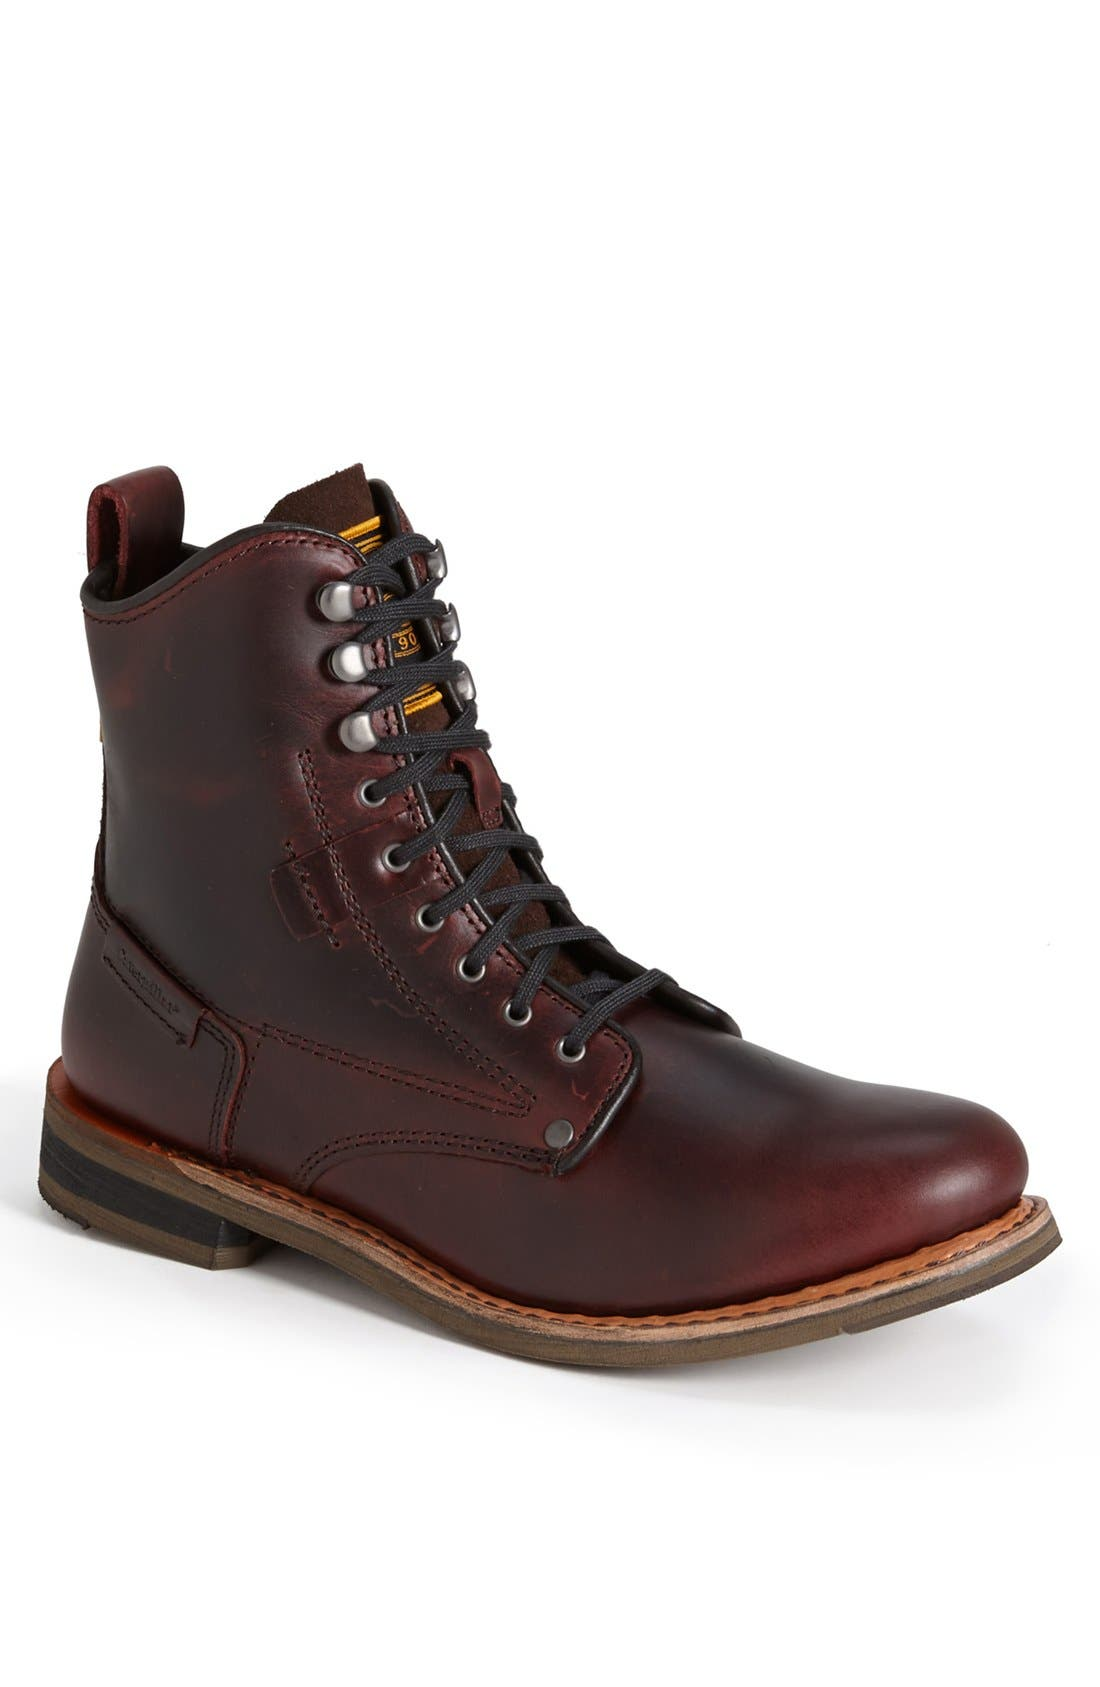 Alternate Image 1 Selected - Caterpillar 'Orson' Boot (Men) (Online Only)